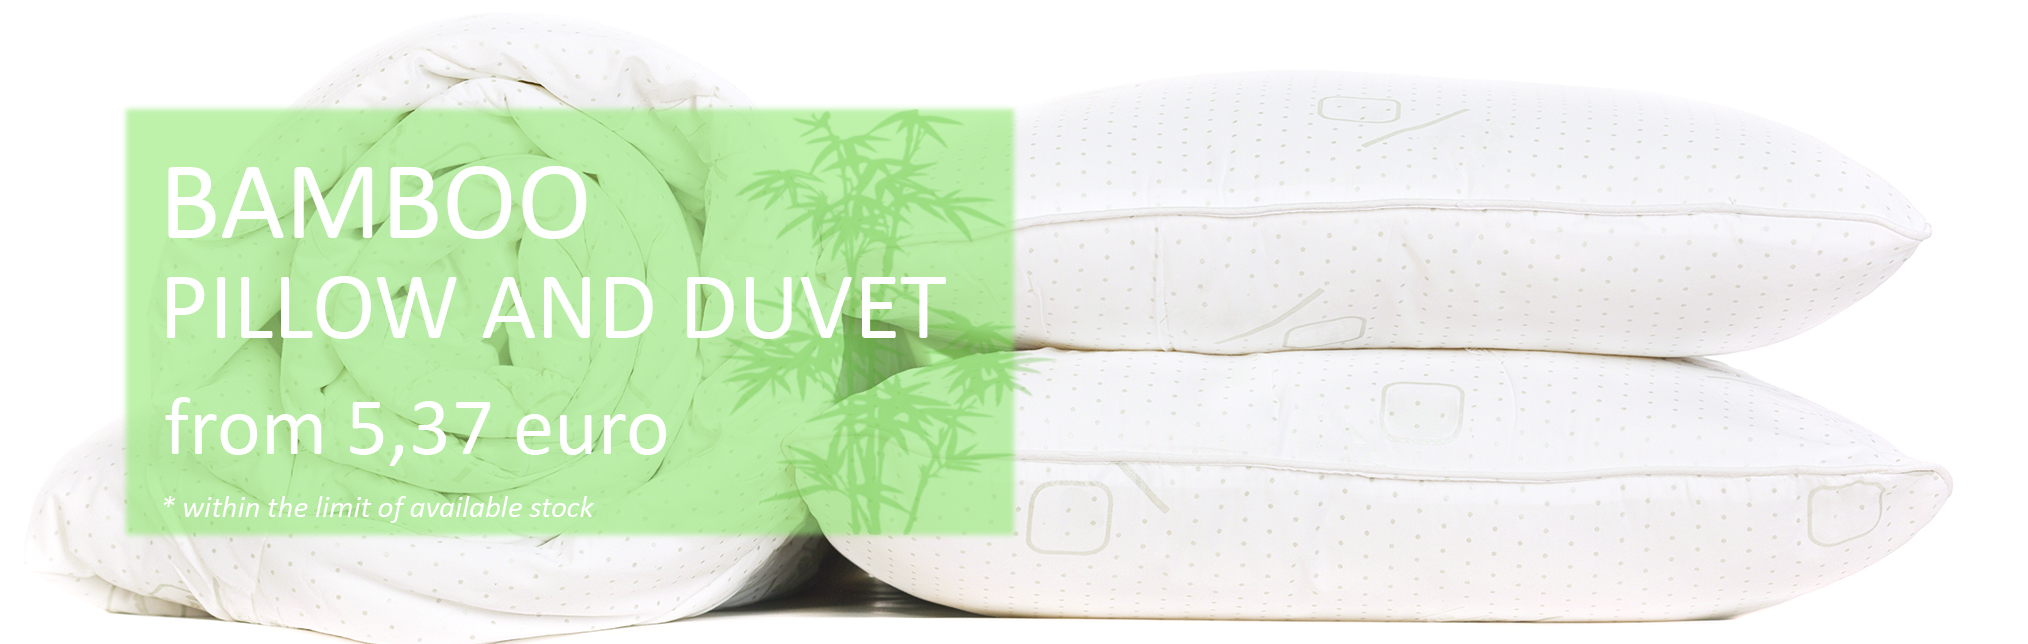 October Promotion - Bamboo Pillow and Duvet